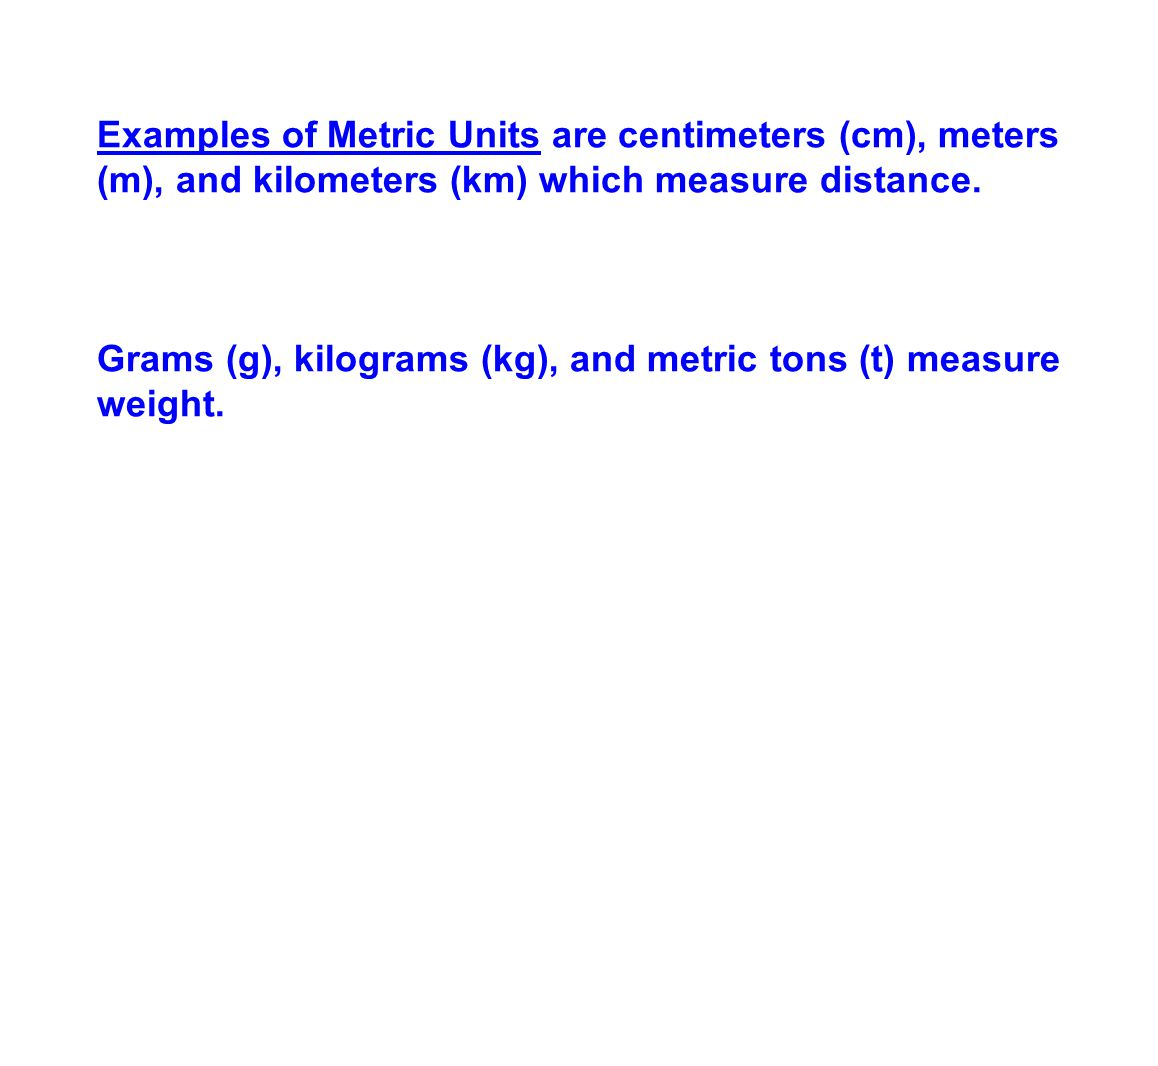 Examples of Metric Units are centimeters (cm), meters (m), and kilometers (km) which measure distance.